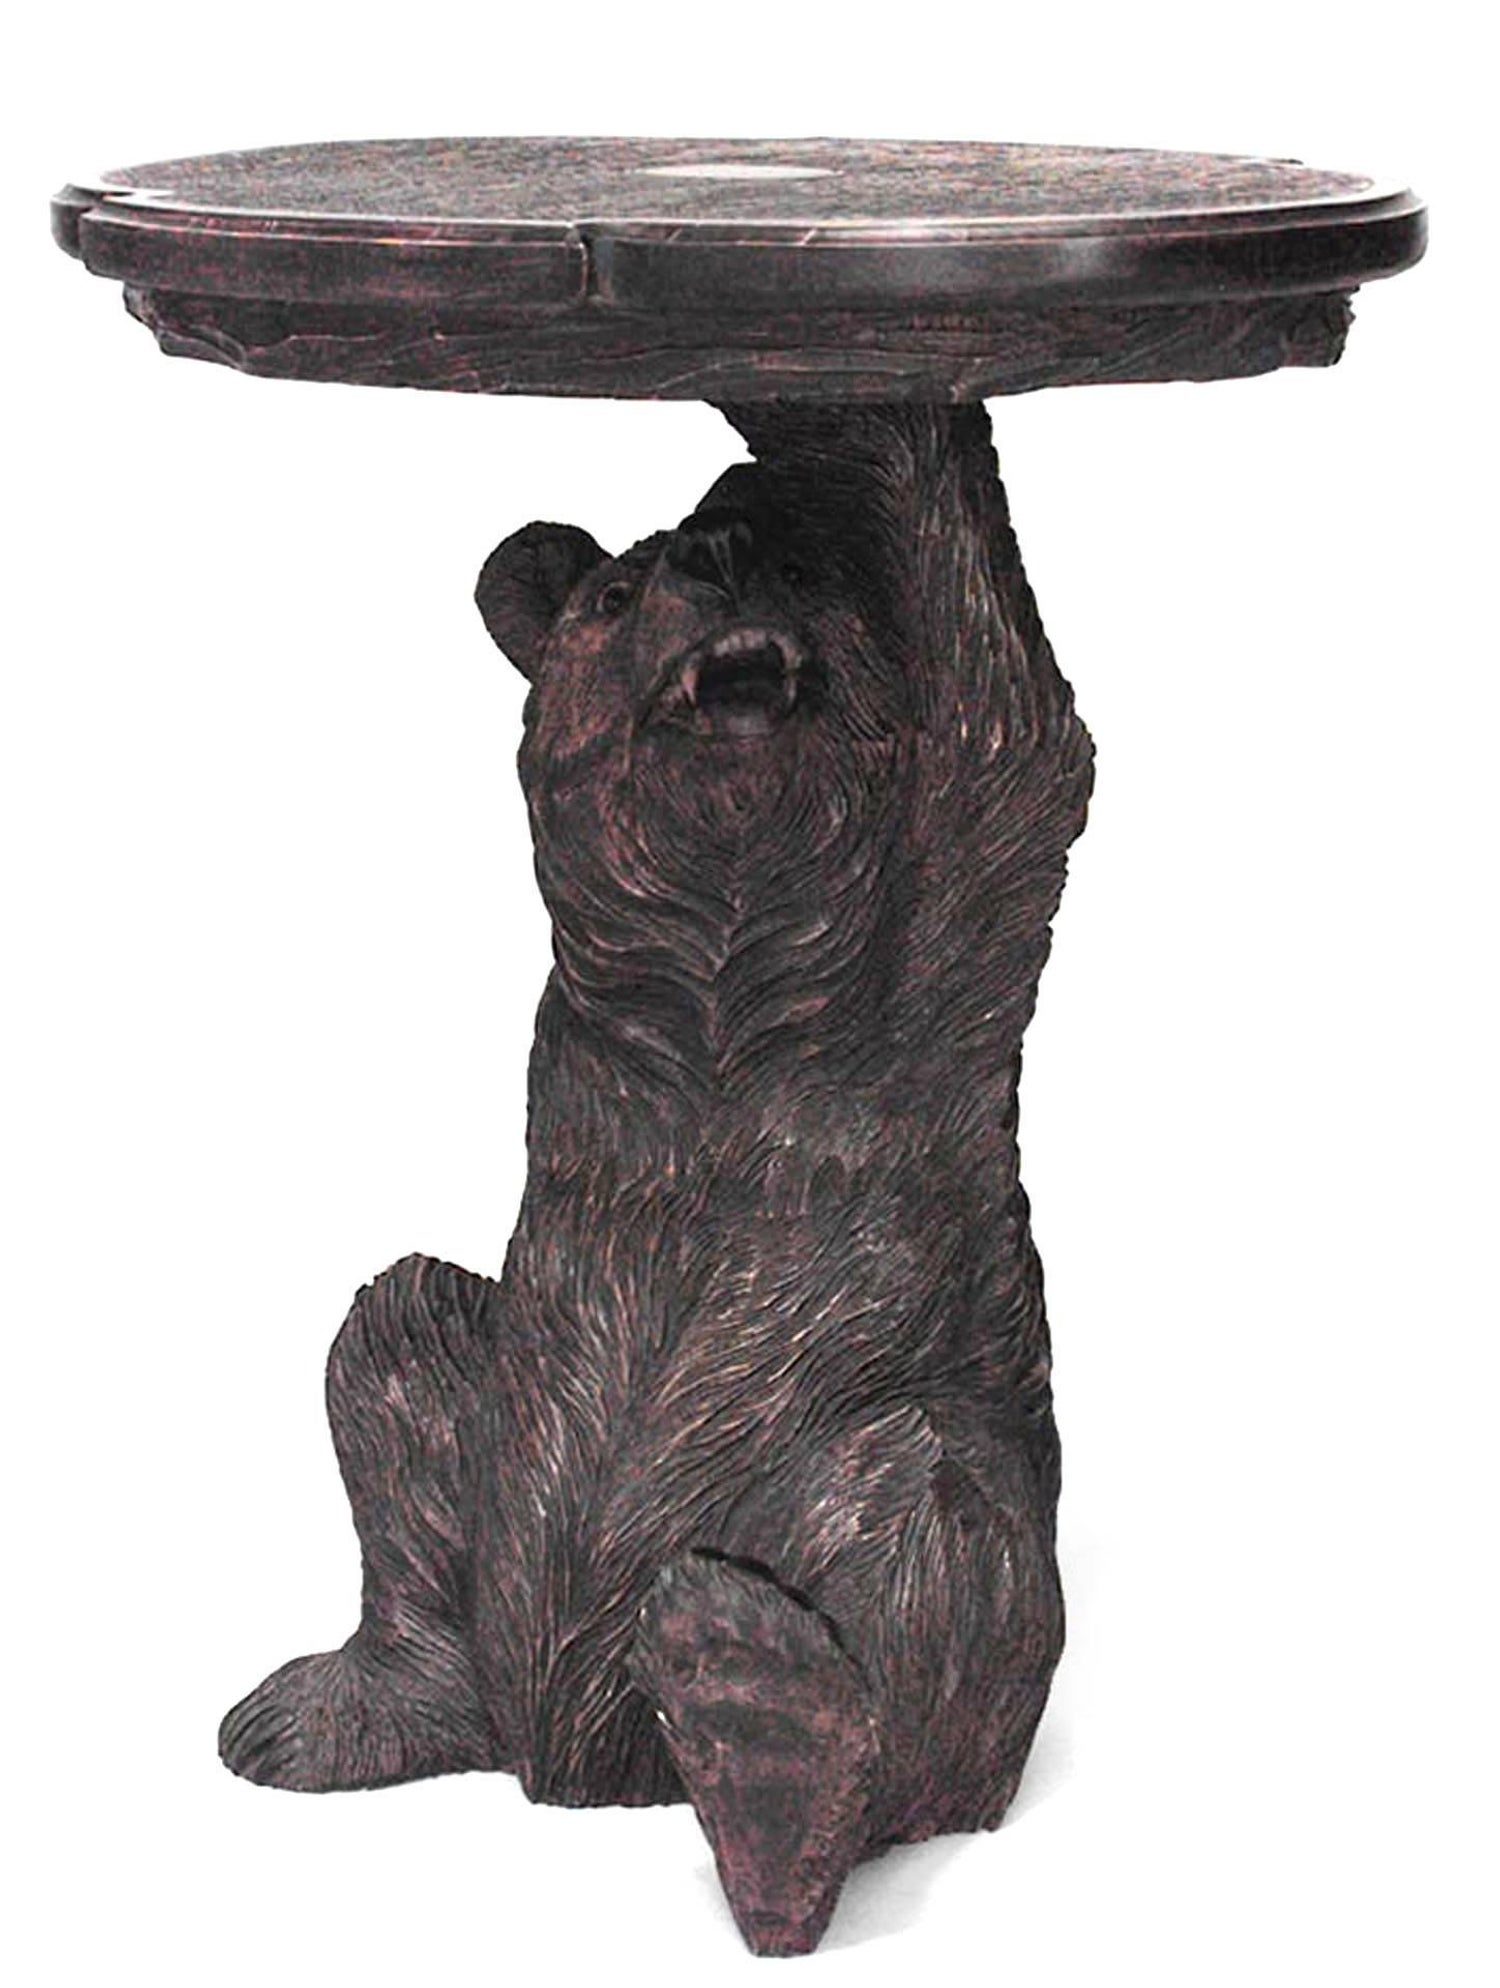 black forest style carved bear end table for master tables lazy boy chair warranty ethan allen customer reviews antigo repurposed sofa south shore coffee morcilla pittsburgh paint